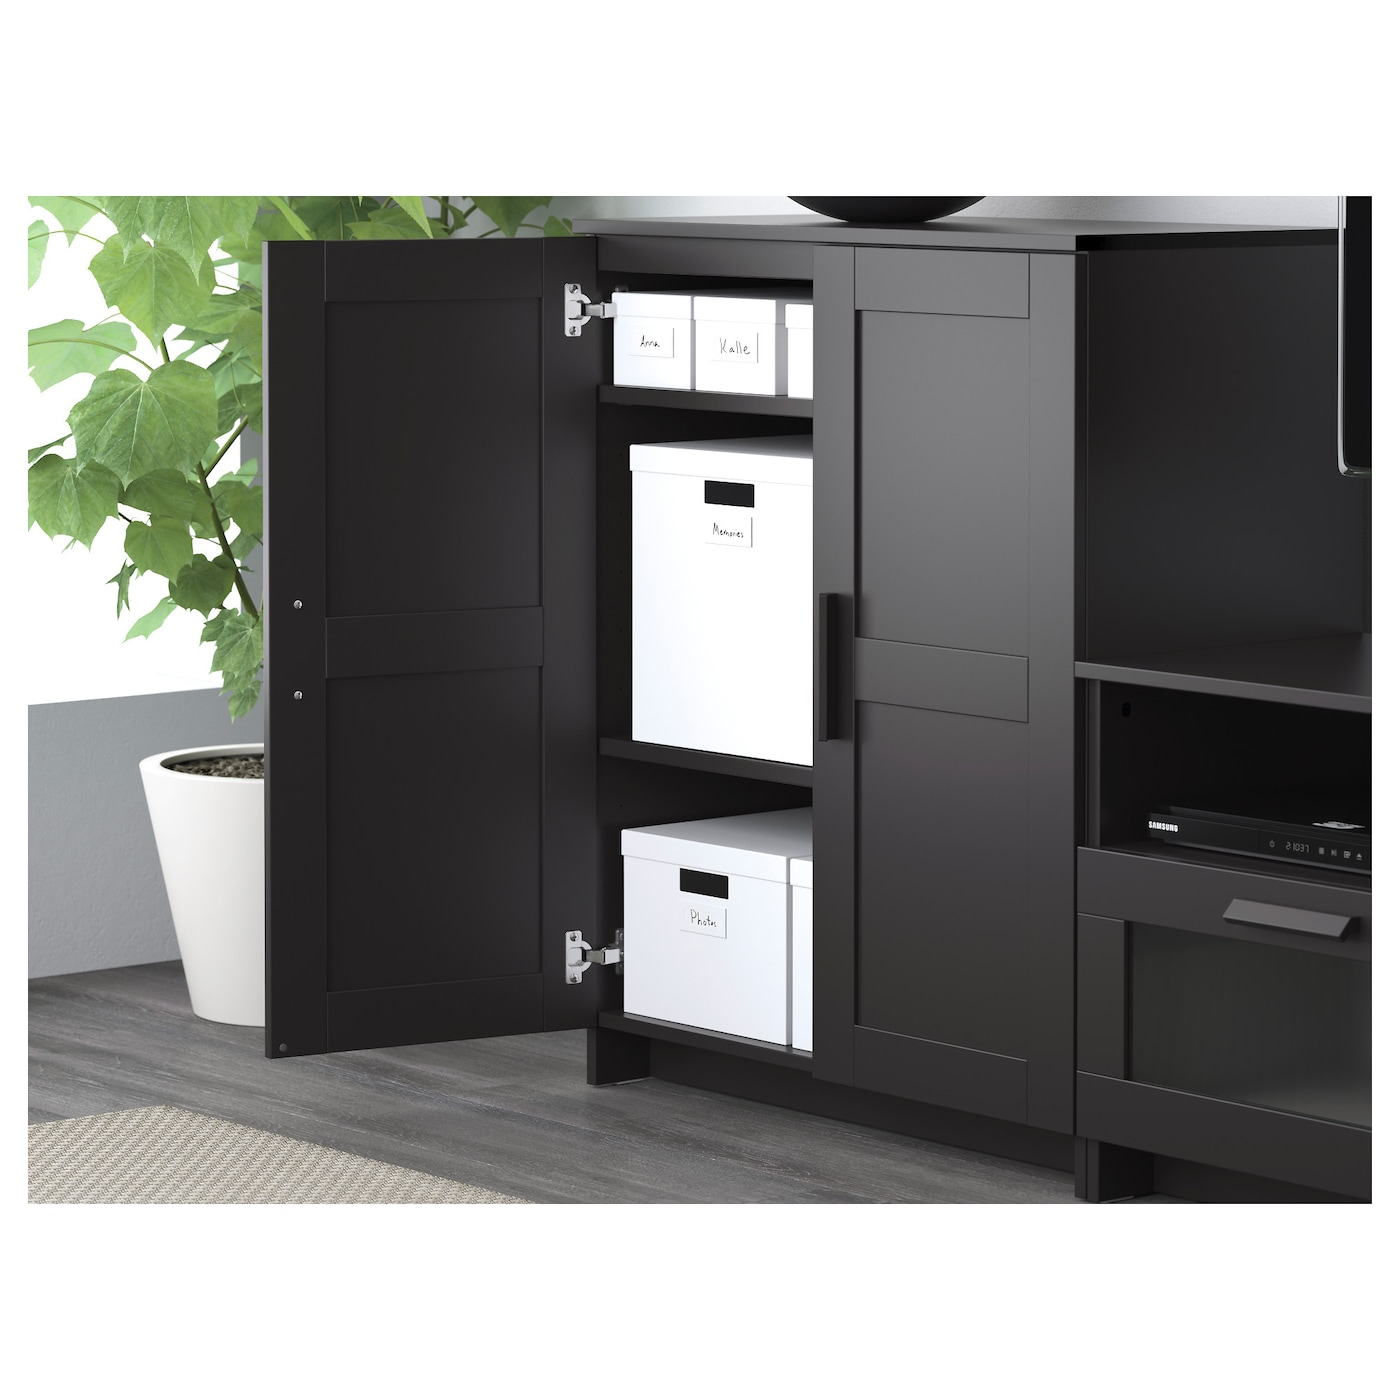 brimnes cabinet with doors black 78 x 95 cm ikea. Black Bedroom Furniture Sets. Home Design Ideas